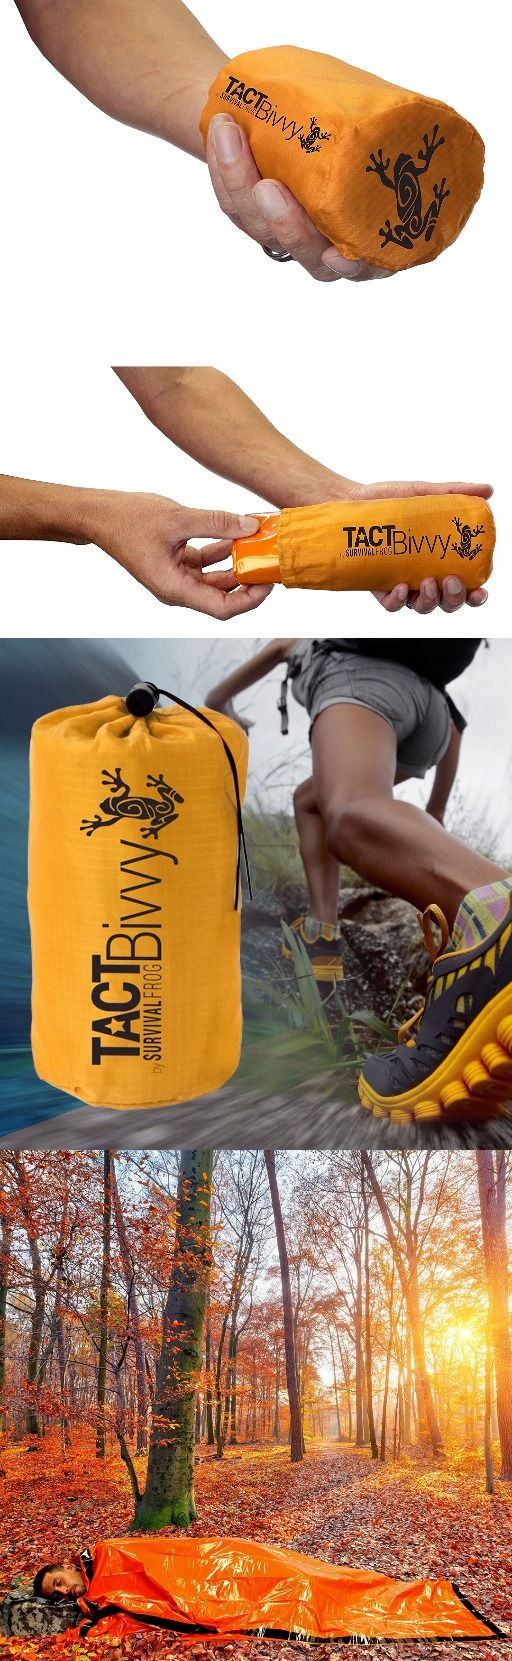 TACT Bivvy Emergency Sleeping Bag by Survival Frog